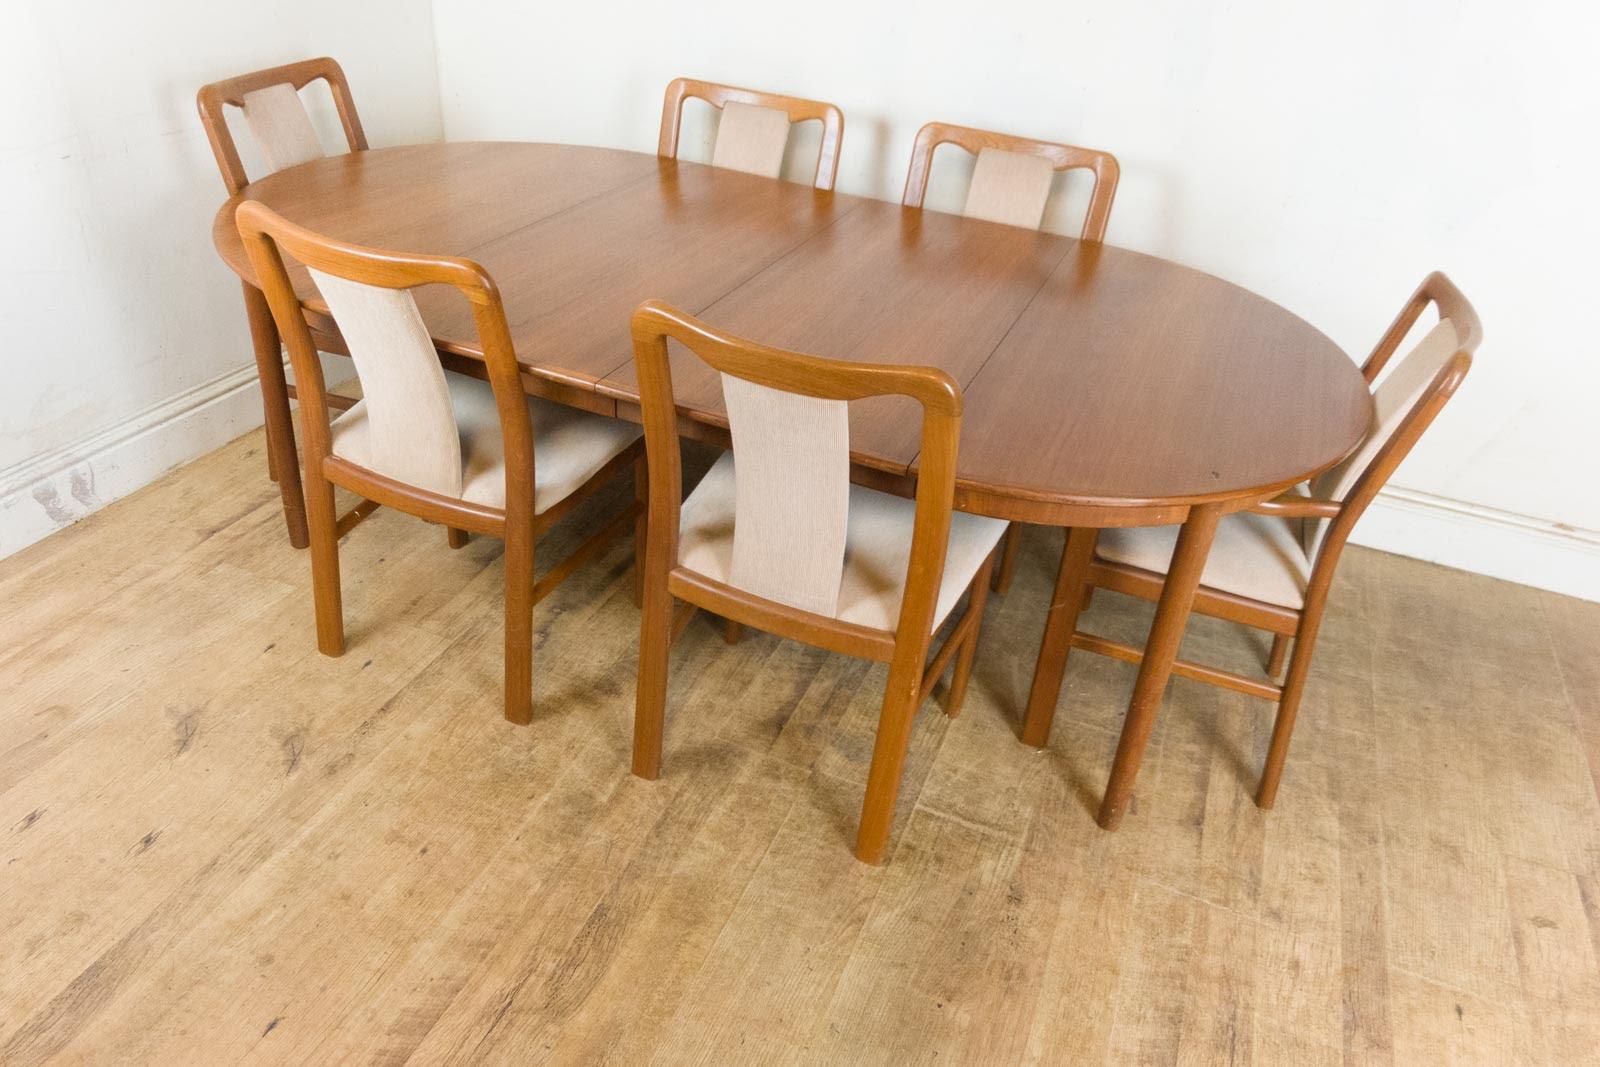 Vintage Retro Danish Extending Dining Table and 6 Chairs  Bernhard Pederson  eBay